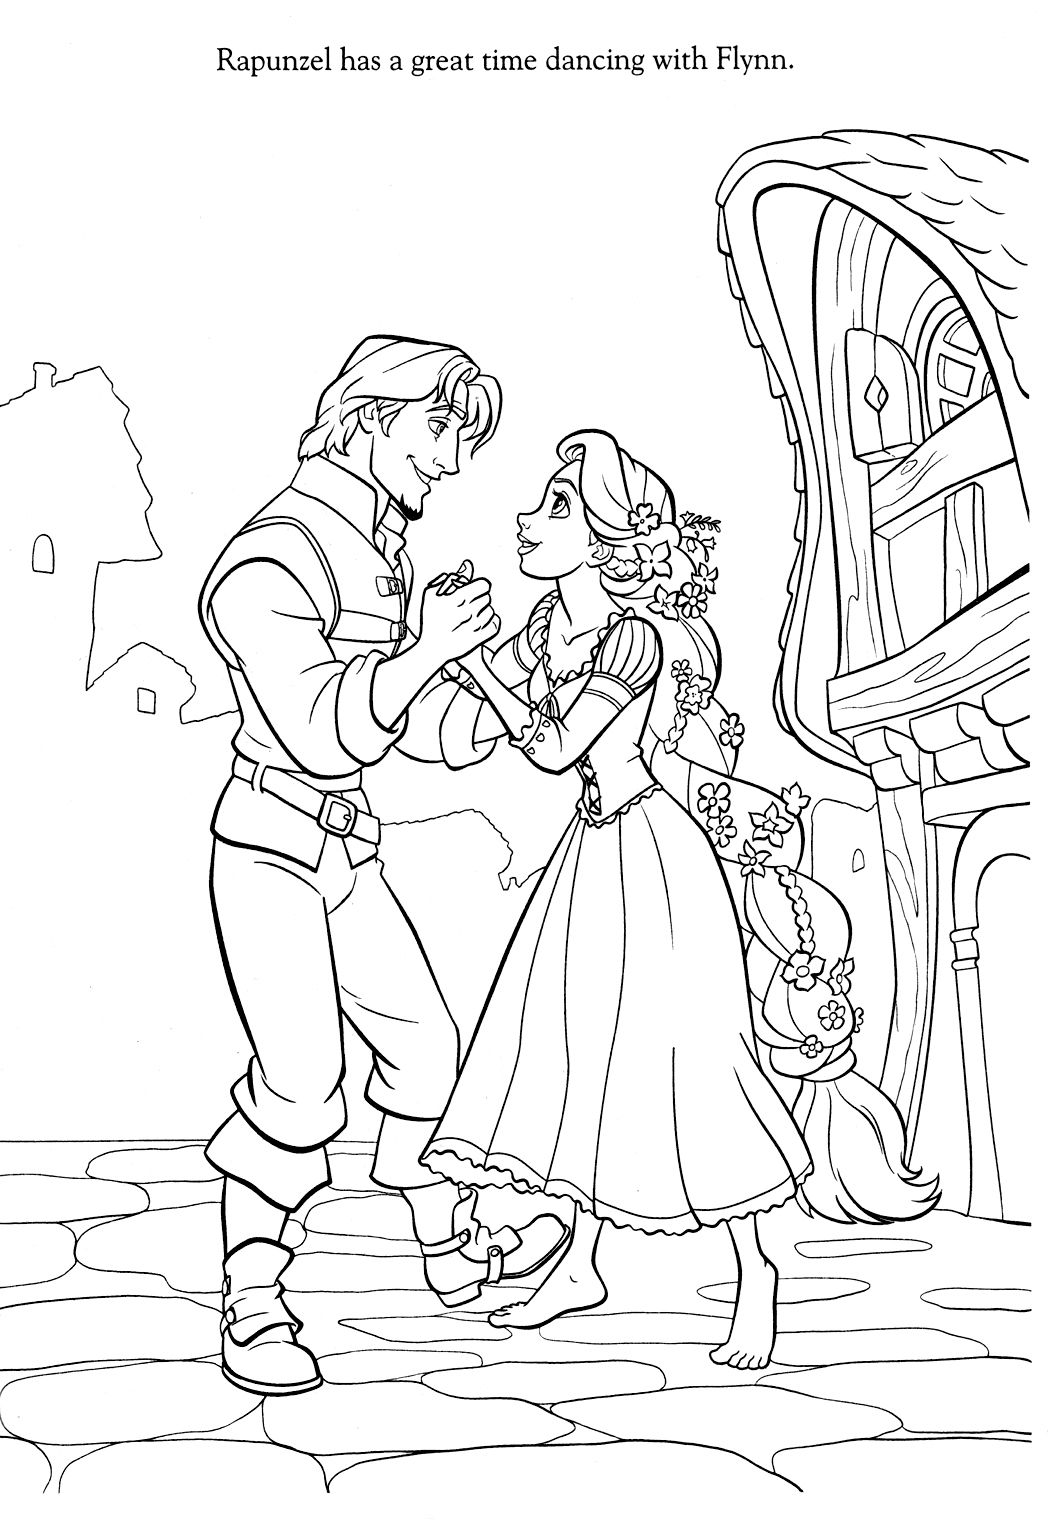 Printable coloring pages tangled - Rapunzel Coloring Page